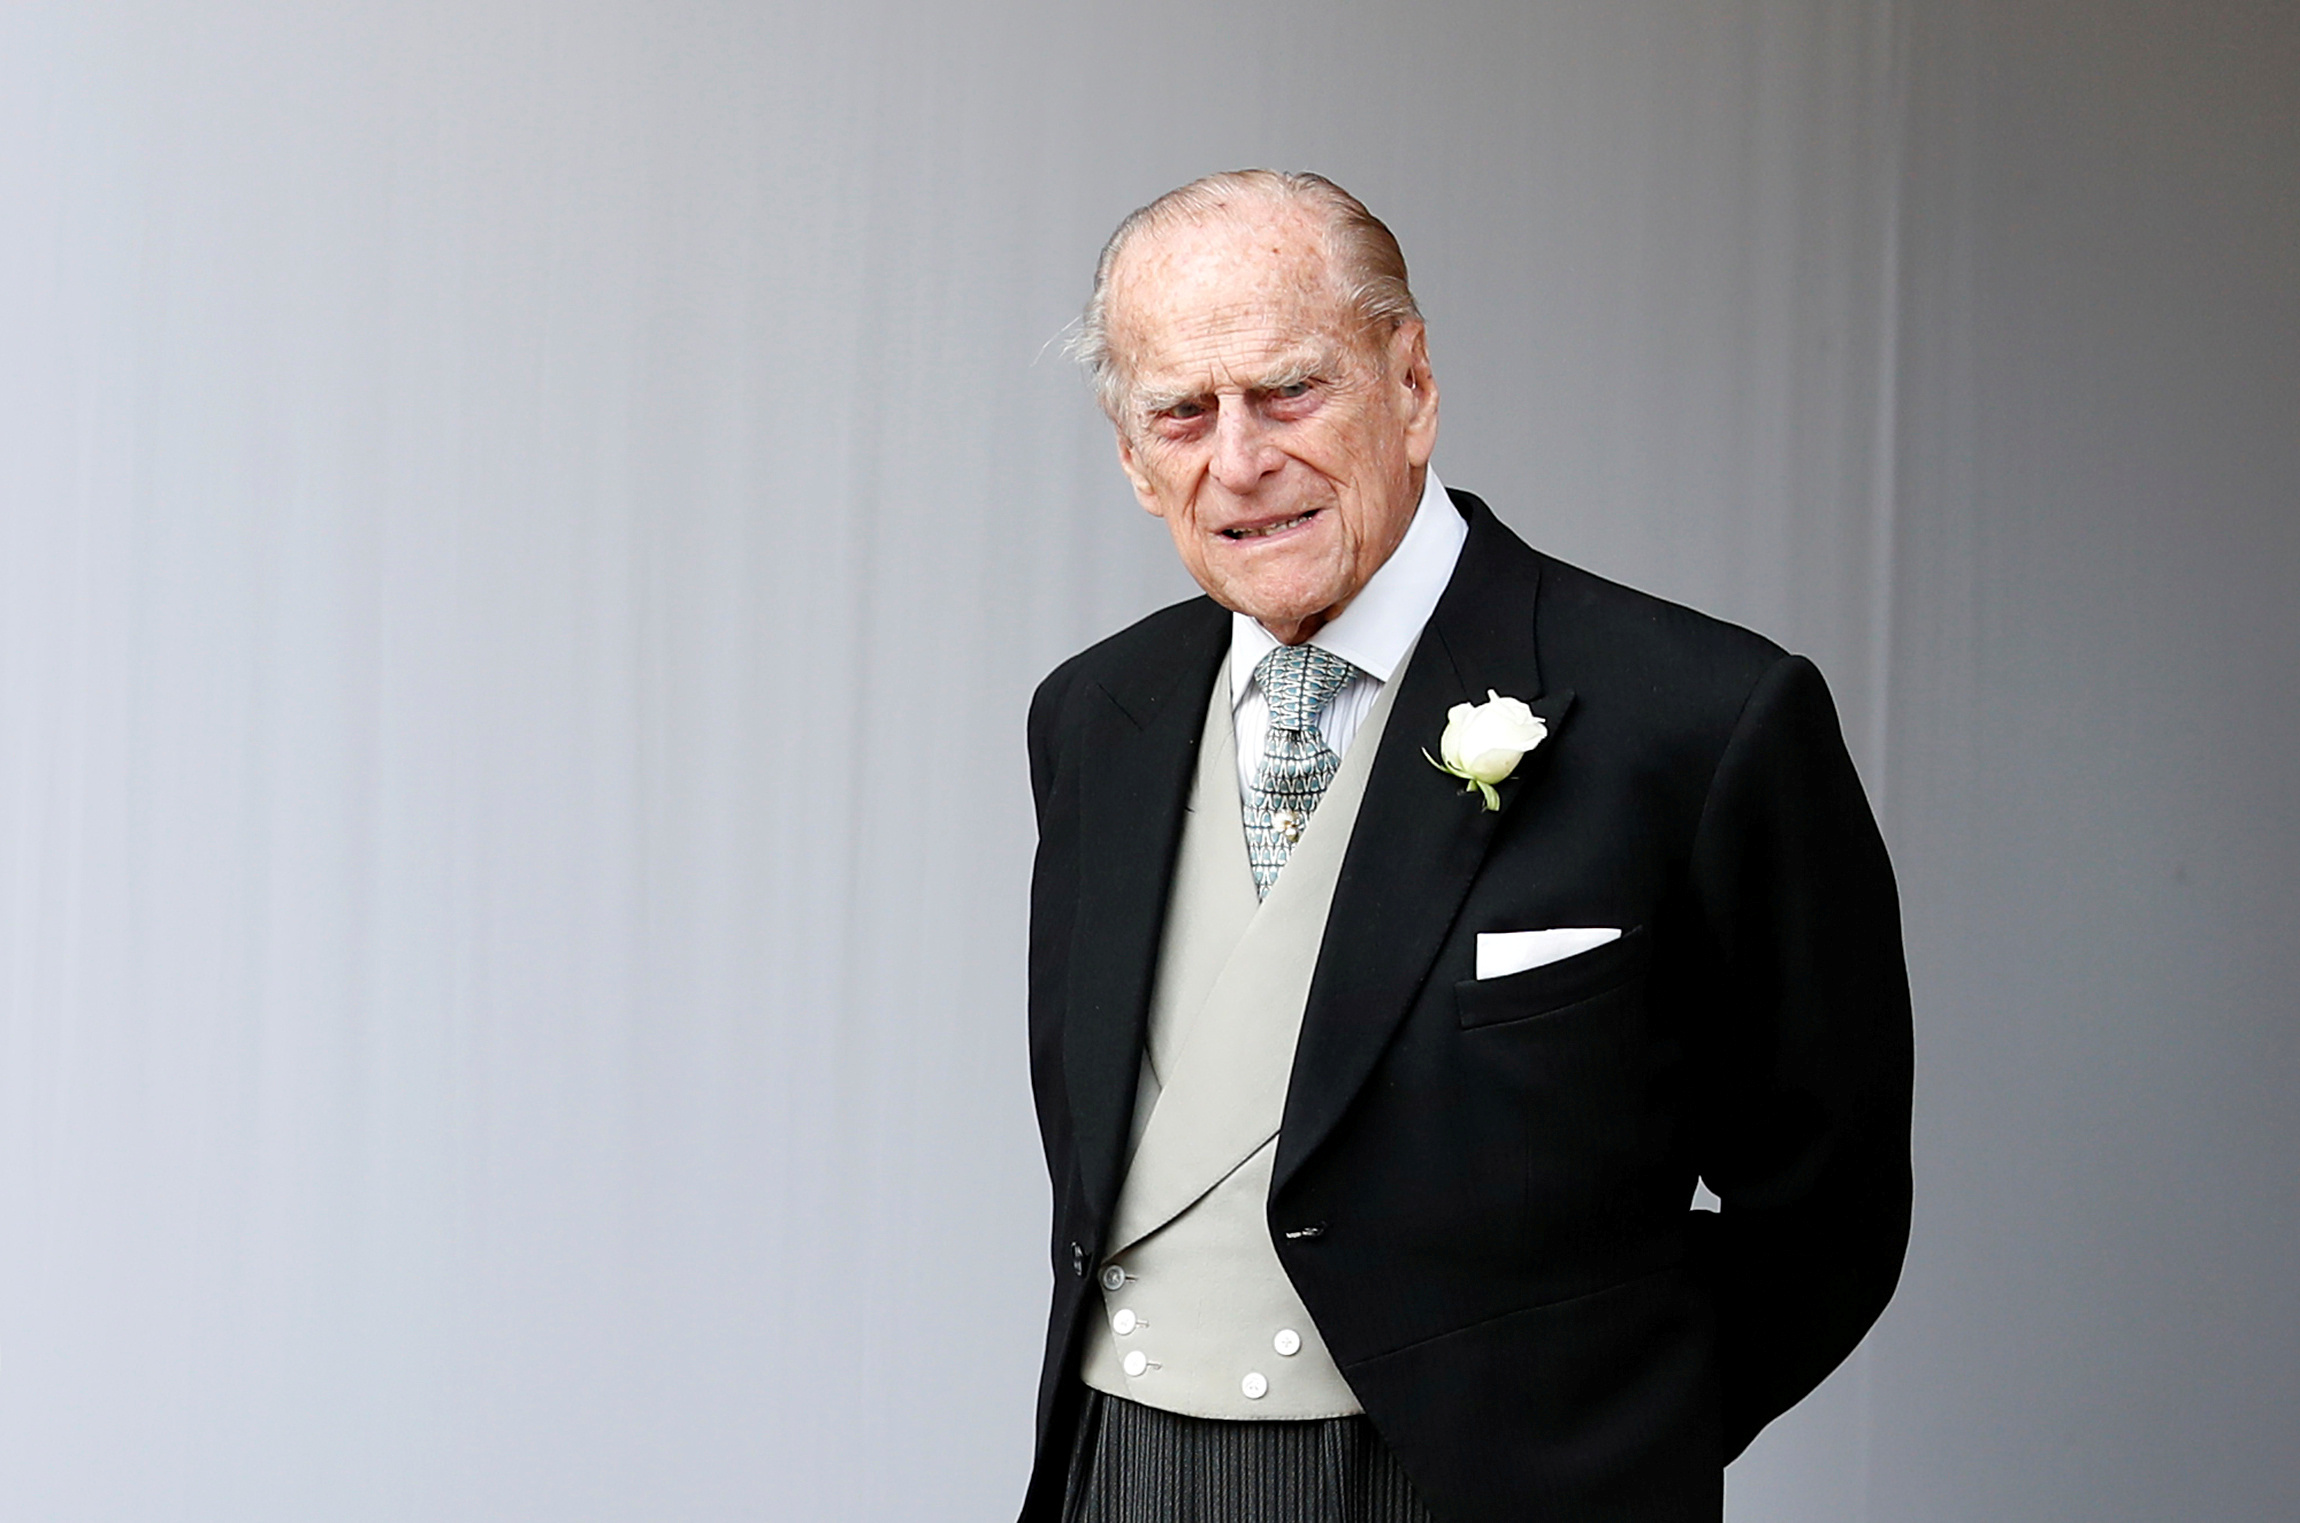 Britain's Prince Philip waits for the bridal procession following the wedding of Princess Eugenie of York and Jack Brooksbank in St George's Chapel, Windsor Castle, near London, Britain October 12, 2018. Alastair Grant/Pool via REUTERS/File Photo